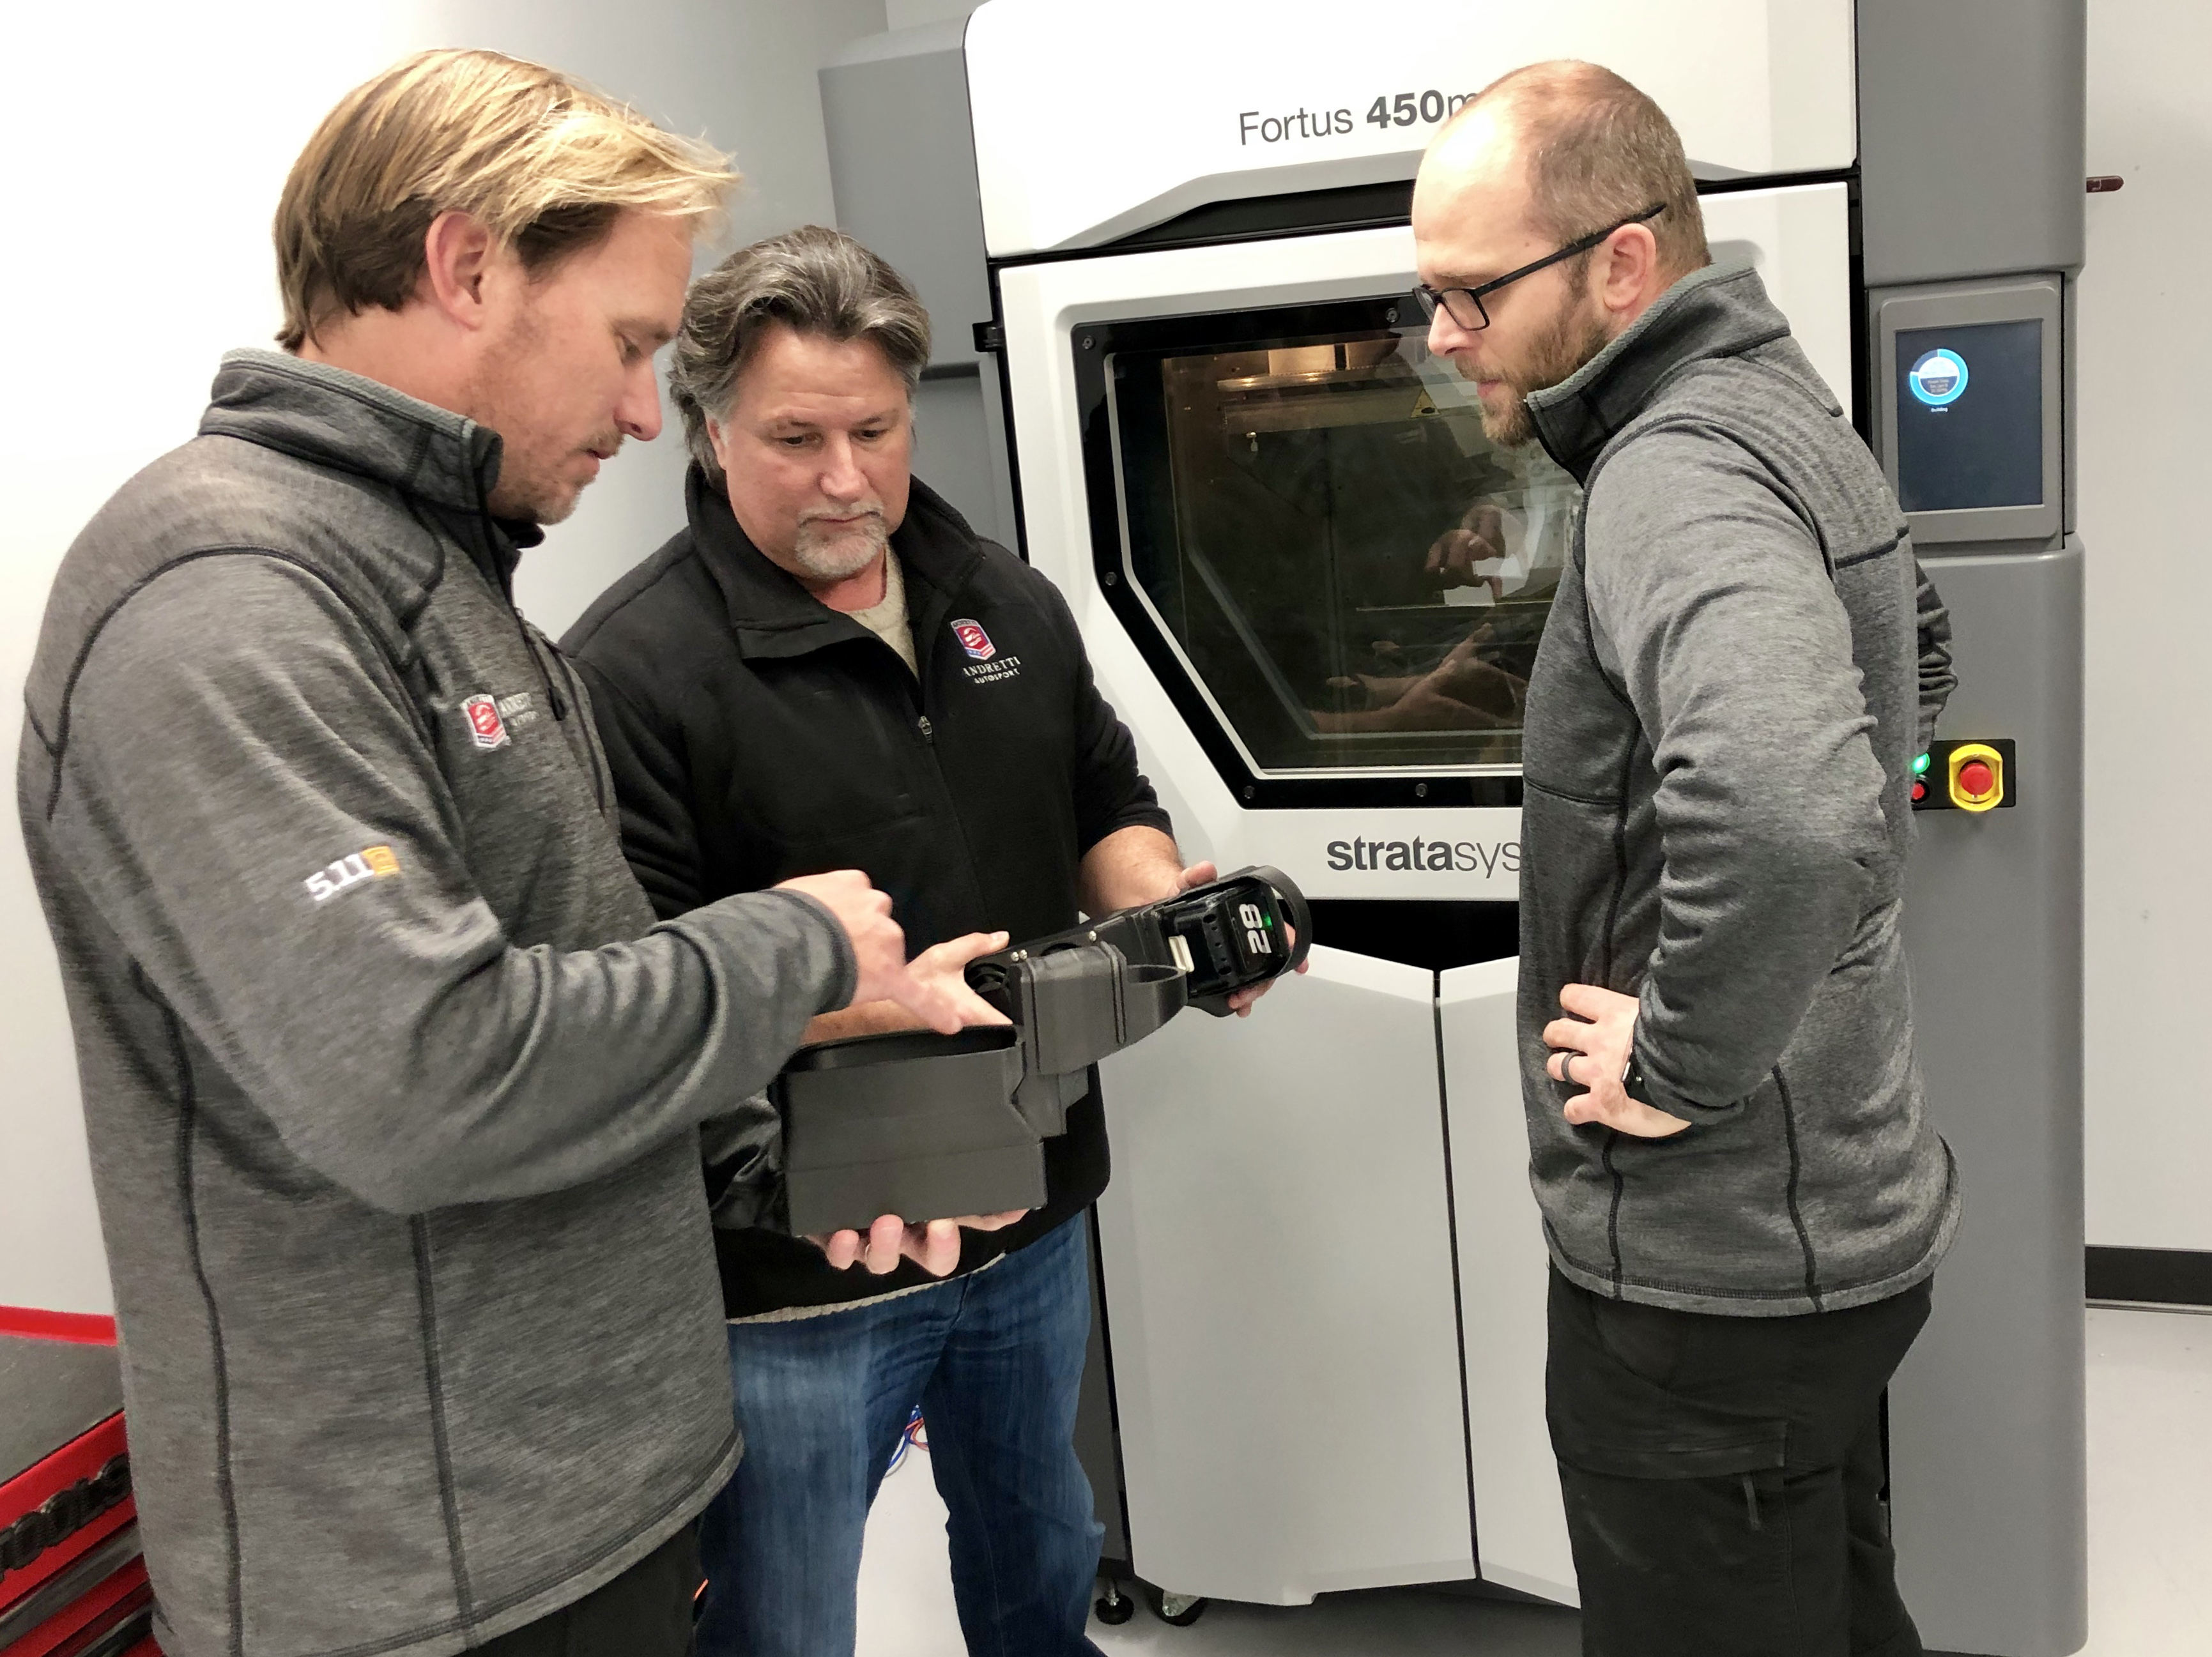 The team at Andretti leverage the Stratasys Fortus 450mc 3D Printer to enhance design and development.